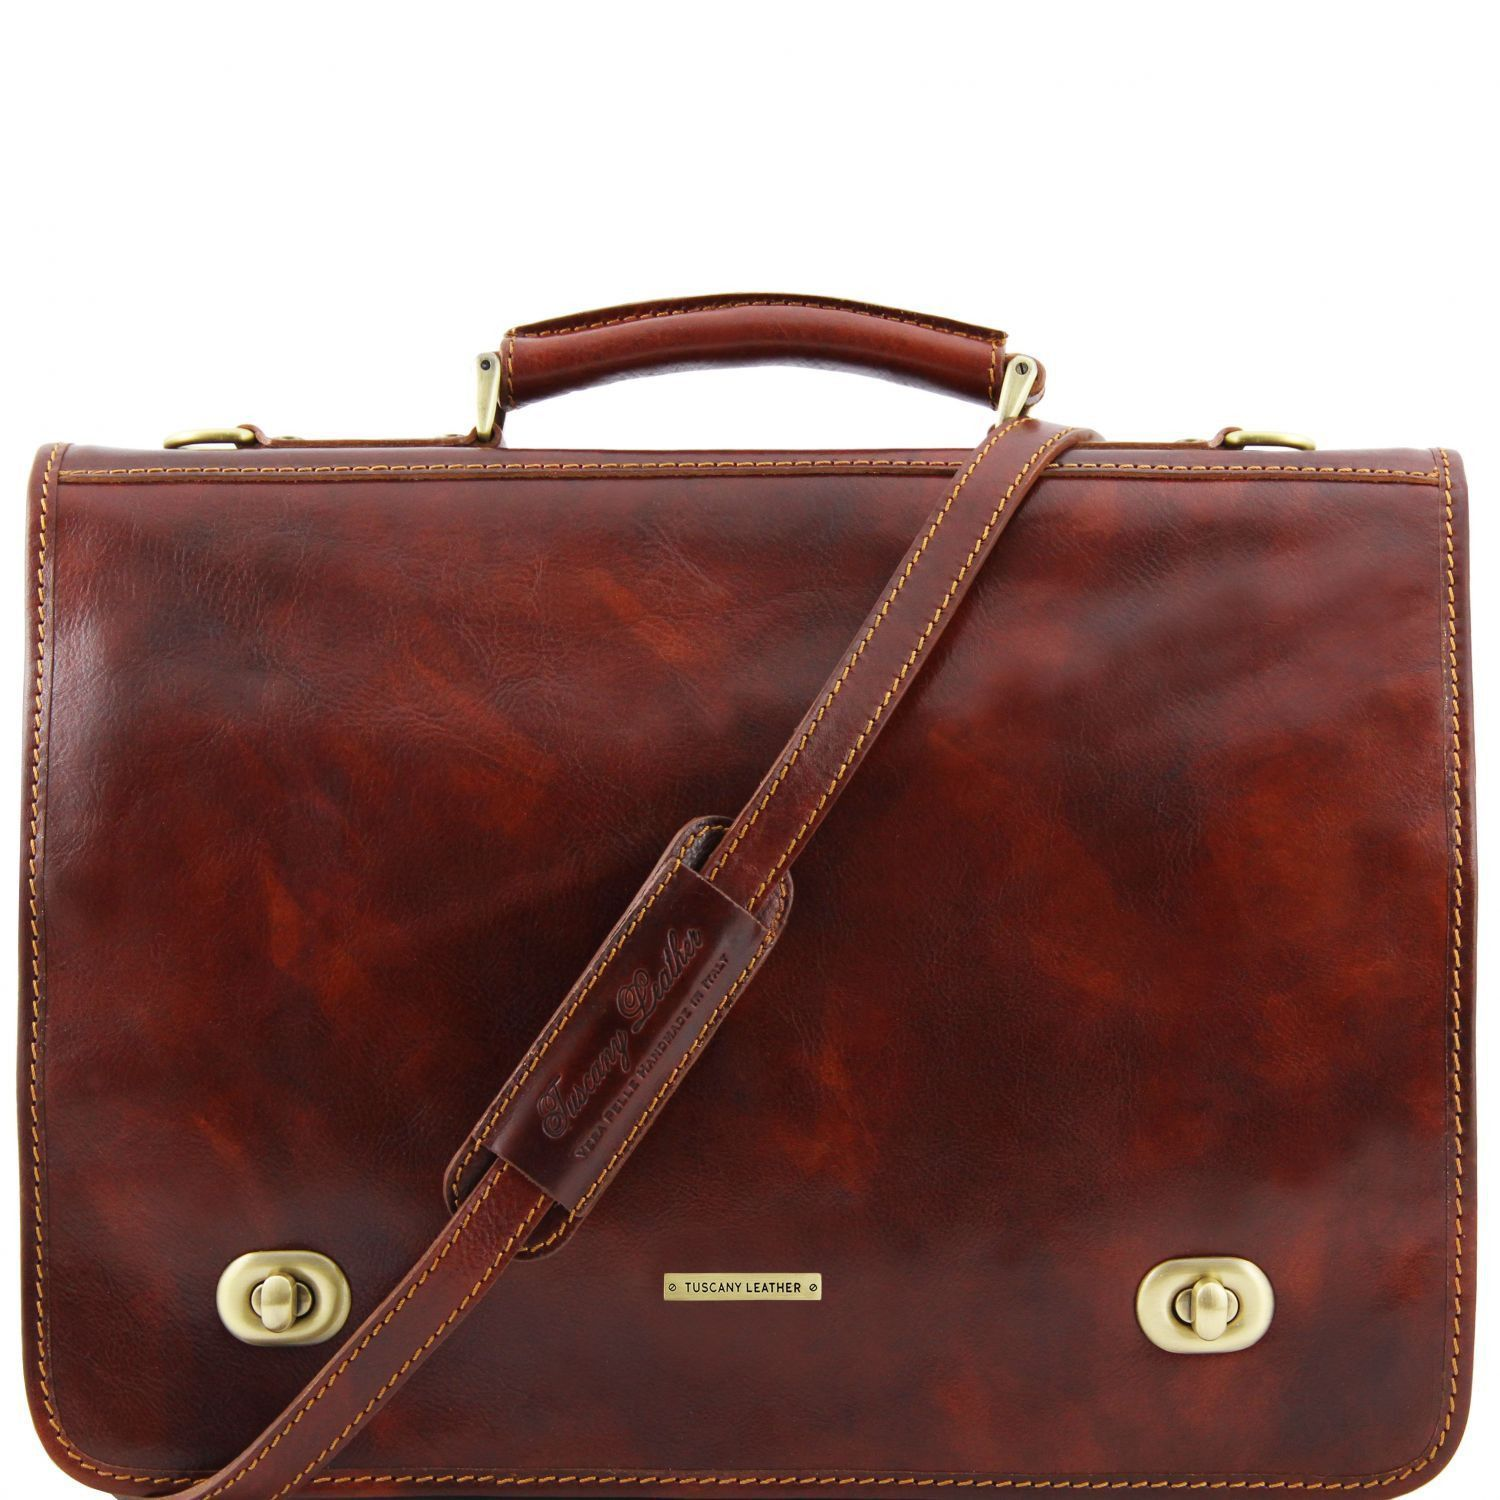 Tuscany Leather 'Siena' Leather Briefcase 2 Compartments Briefcase Tuscany Leather Brown